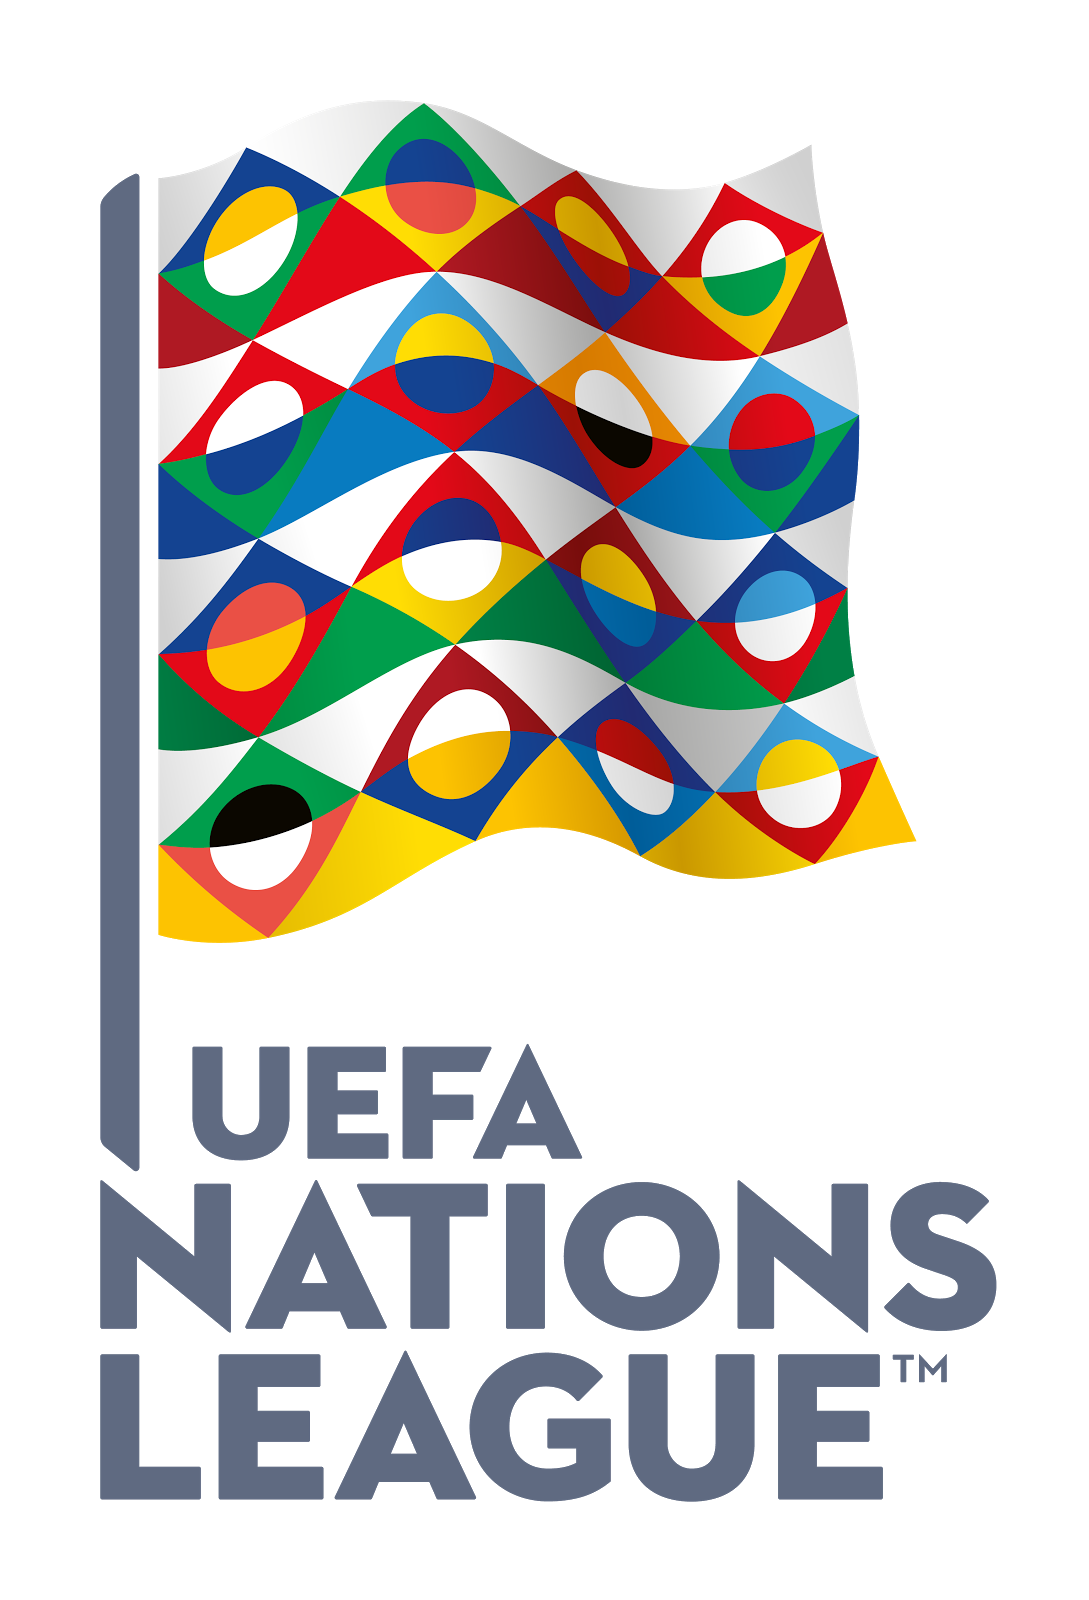 UEFA Nations League D 2018/19